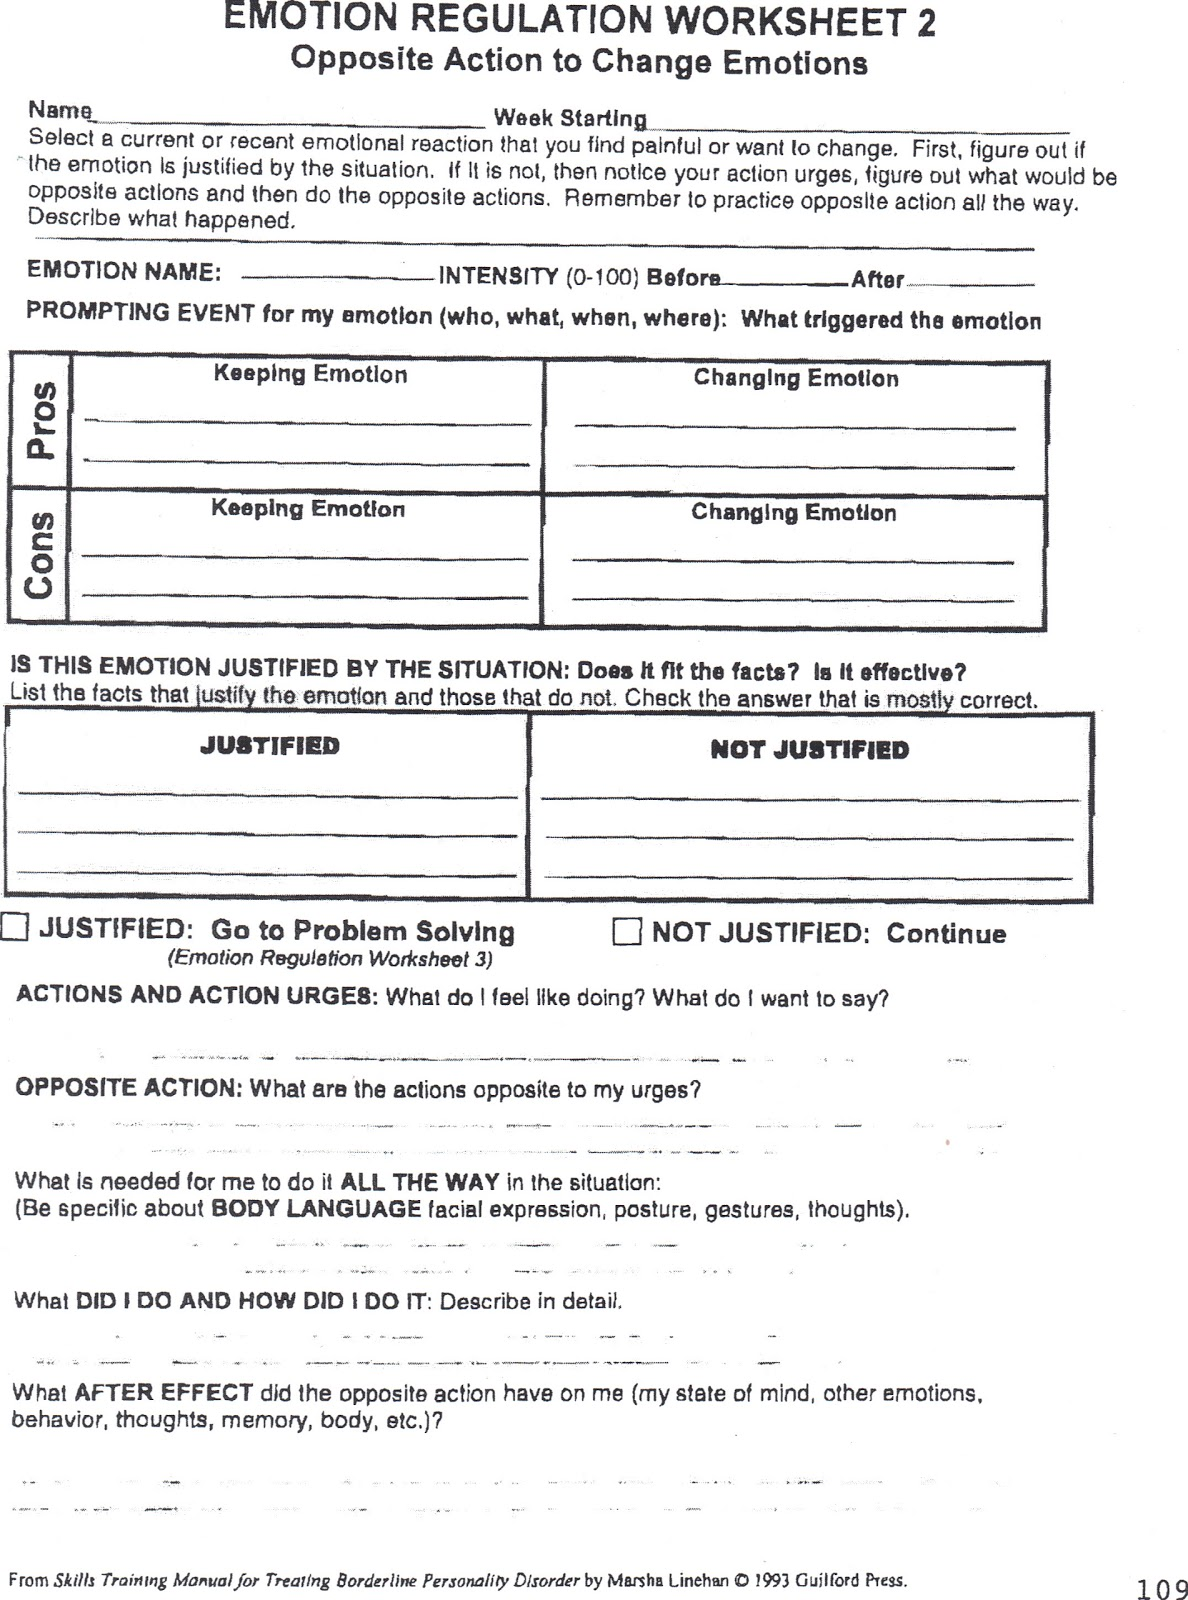 Healing From BPD Borderline Personality Disorder Blog Emotion – Emotion Regulation Worksheet